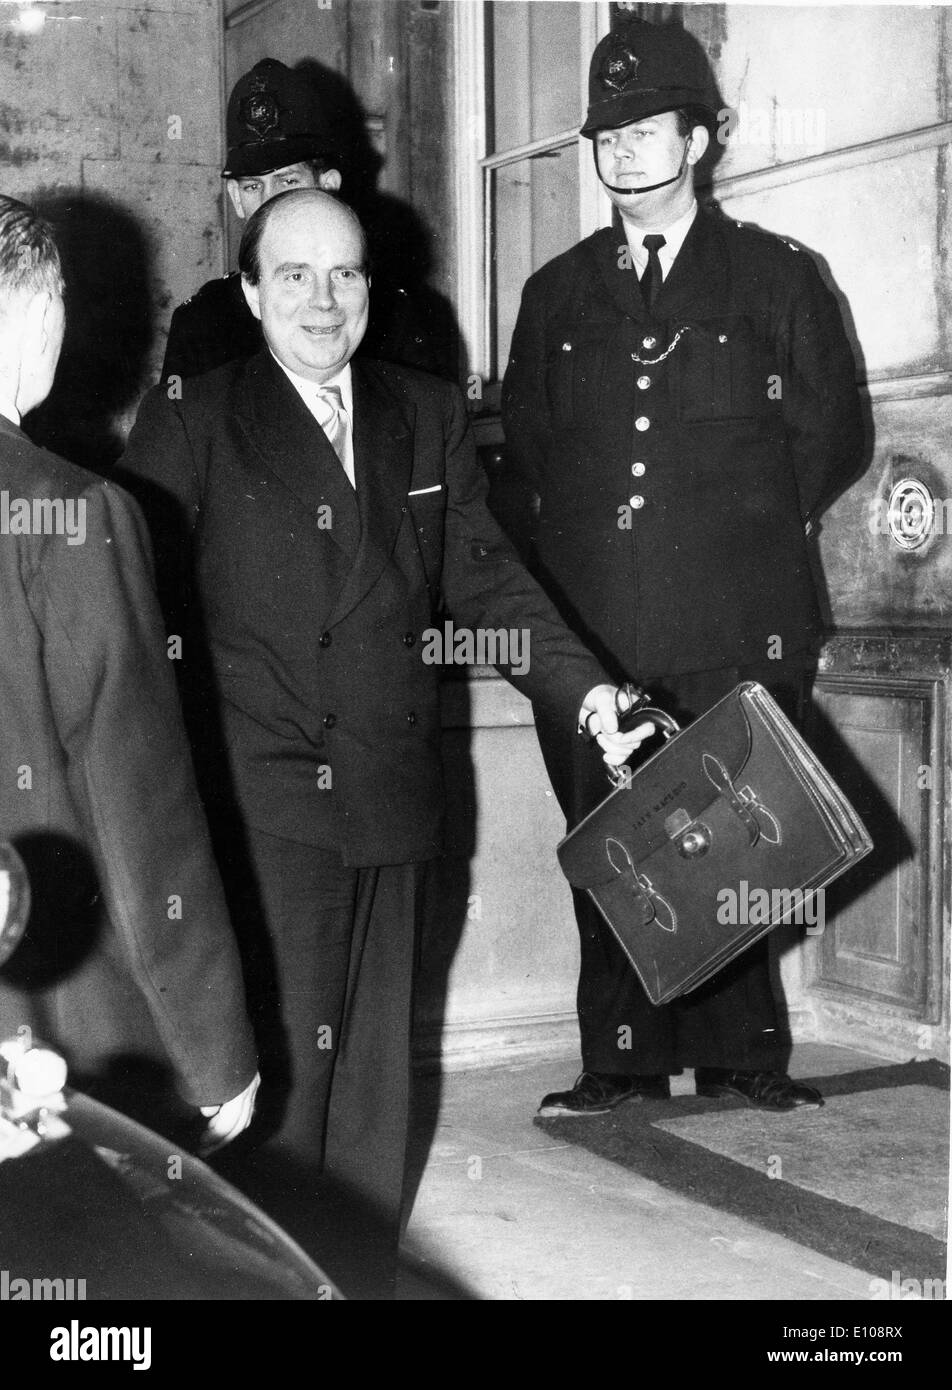 Iain Macleod arrives at Lancaster House - Stock Image